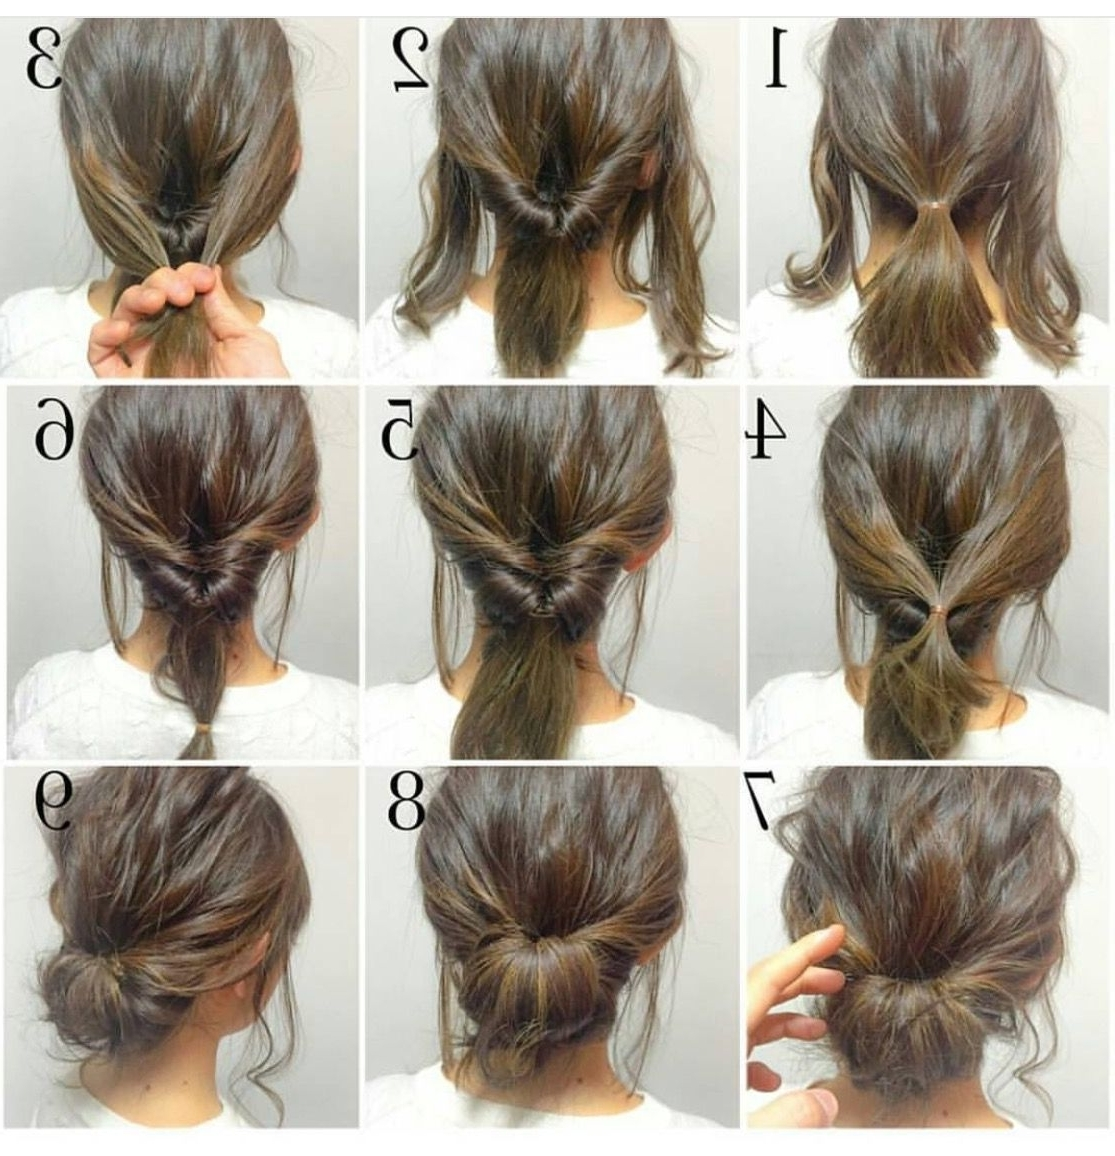 Easy, Hope This Works Out Quick Morning Hair! | • H A I R Intended For Easy Hair Updo Hairstyles For Wedding (View 3 of 15)